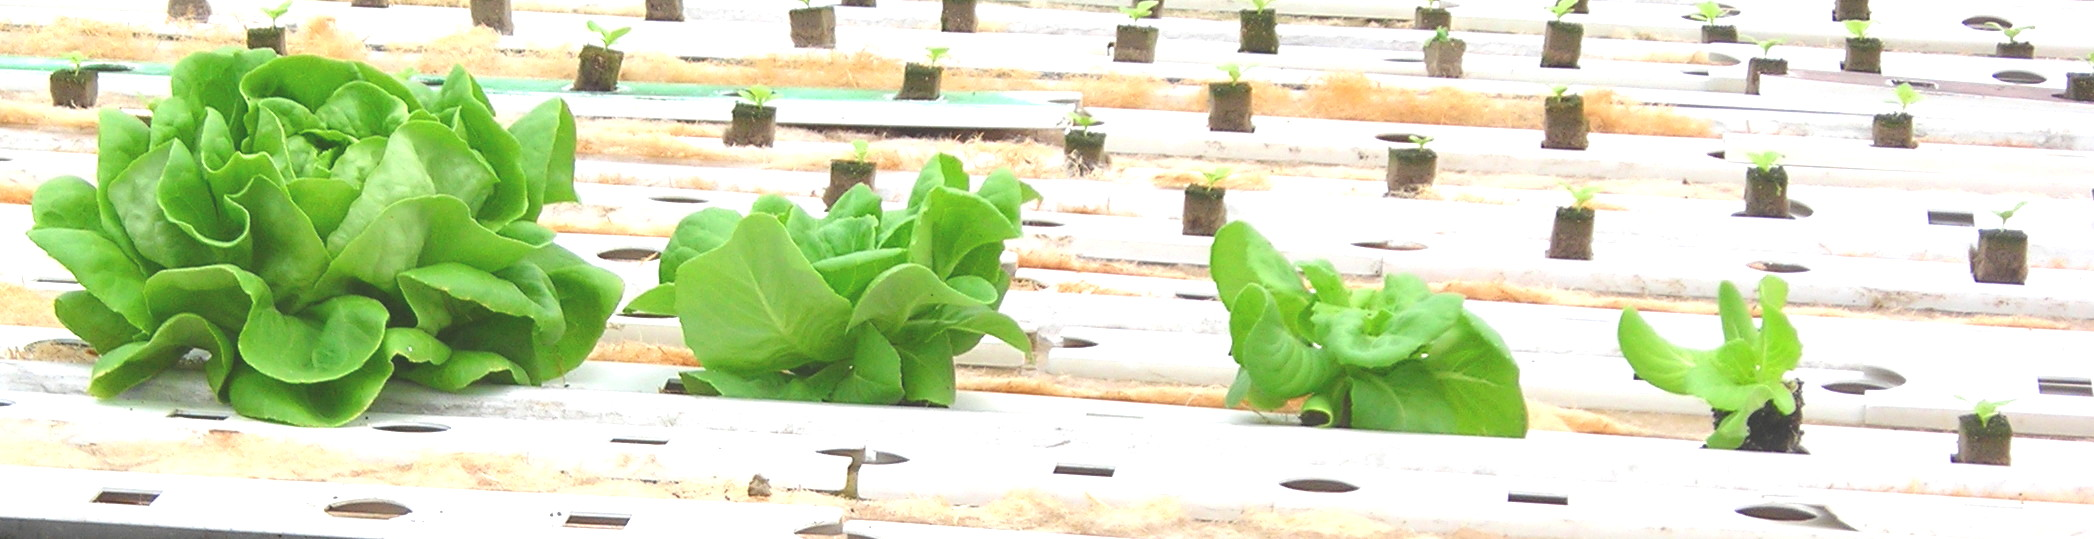 Growing Lettuce    McGregor s Greens from ARC GreenhousesLettuce Growing Stages